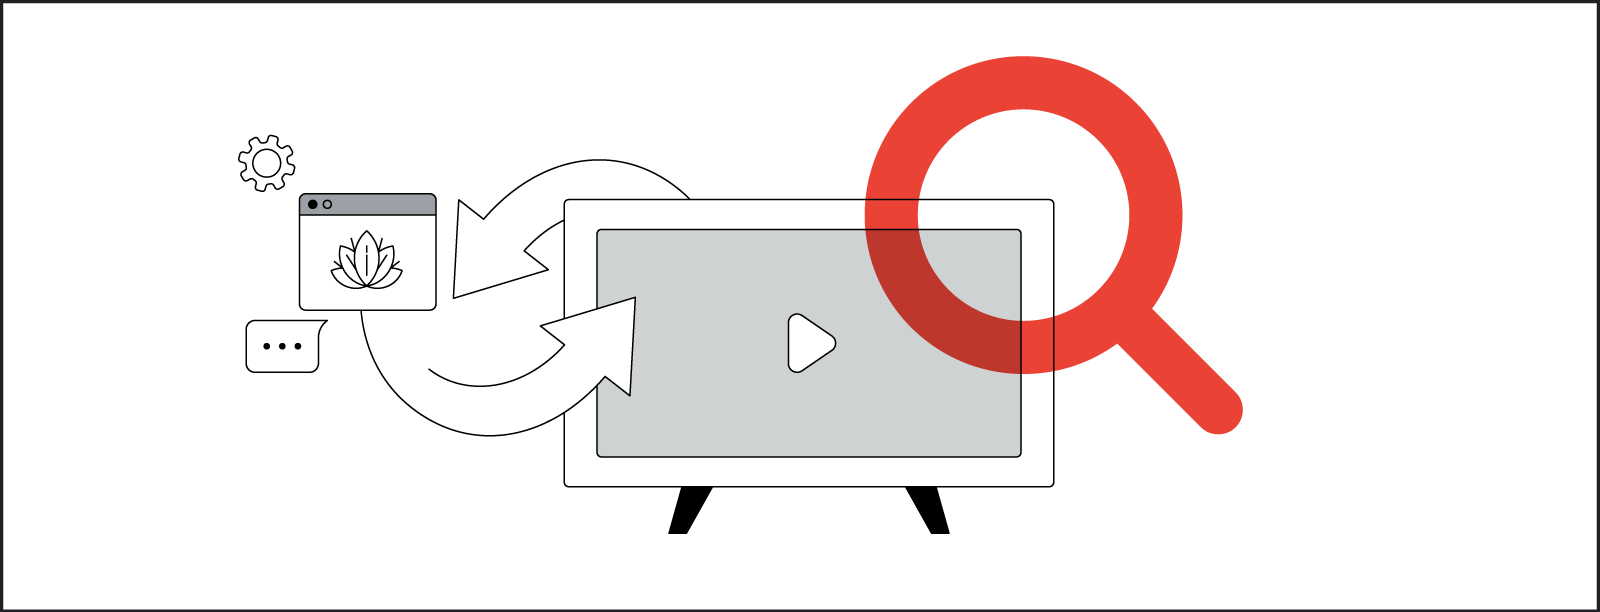 Stylized line drawing illustrating how people switch from watching video content among a variety of screen types.